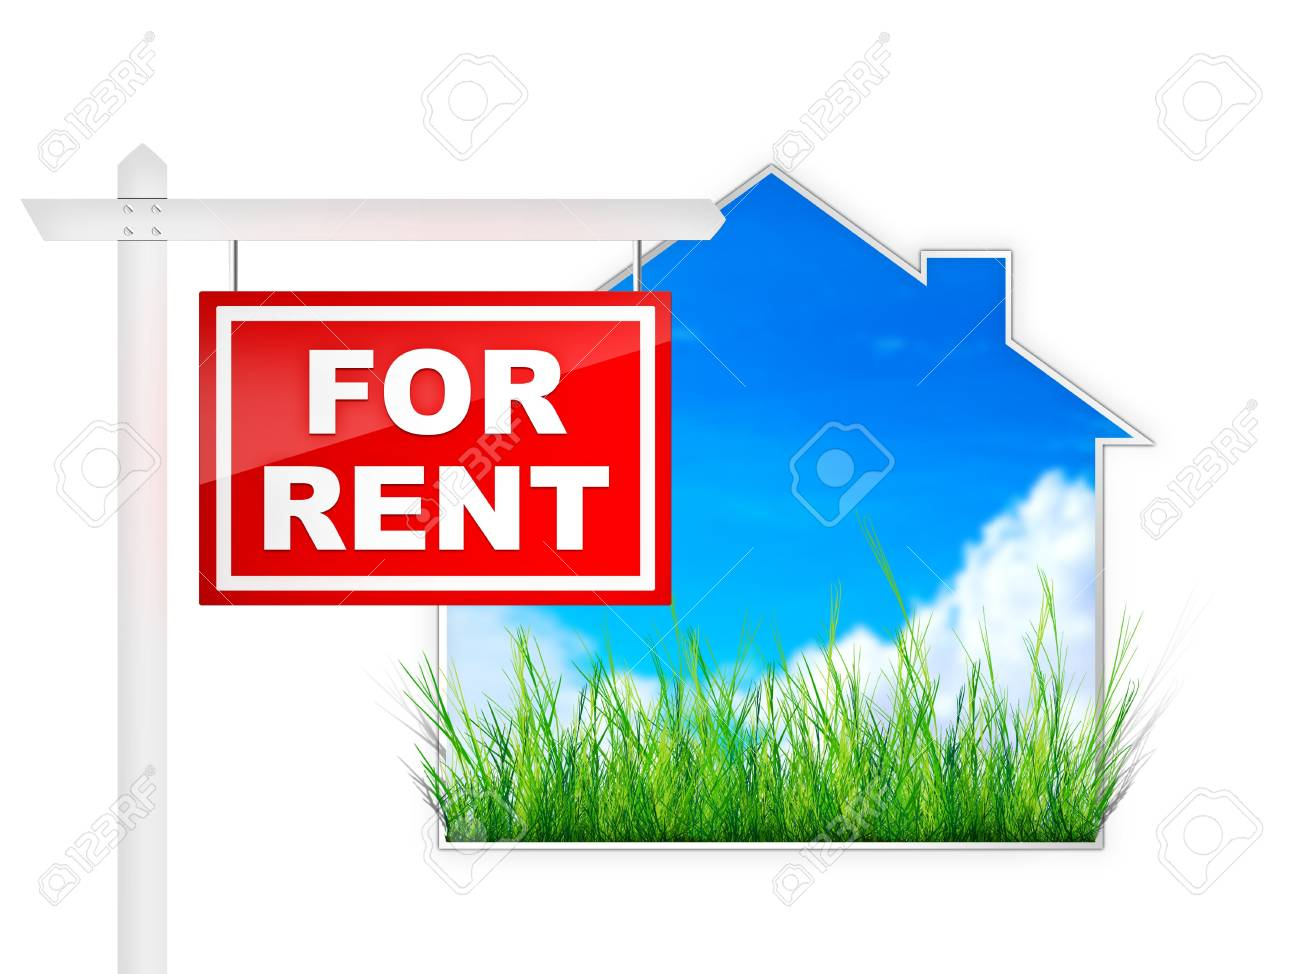 For Rent - Real Estate Tablet Stock Photo - 4913095